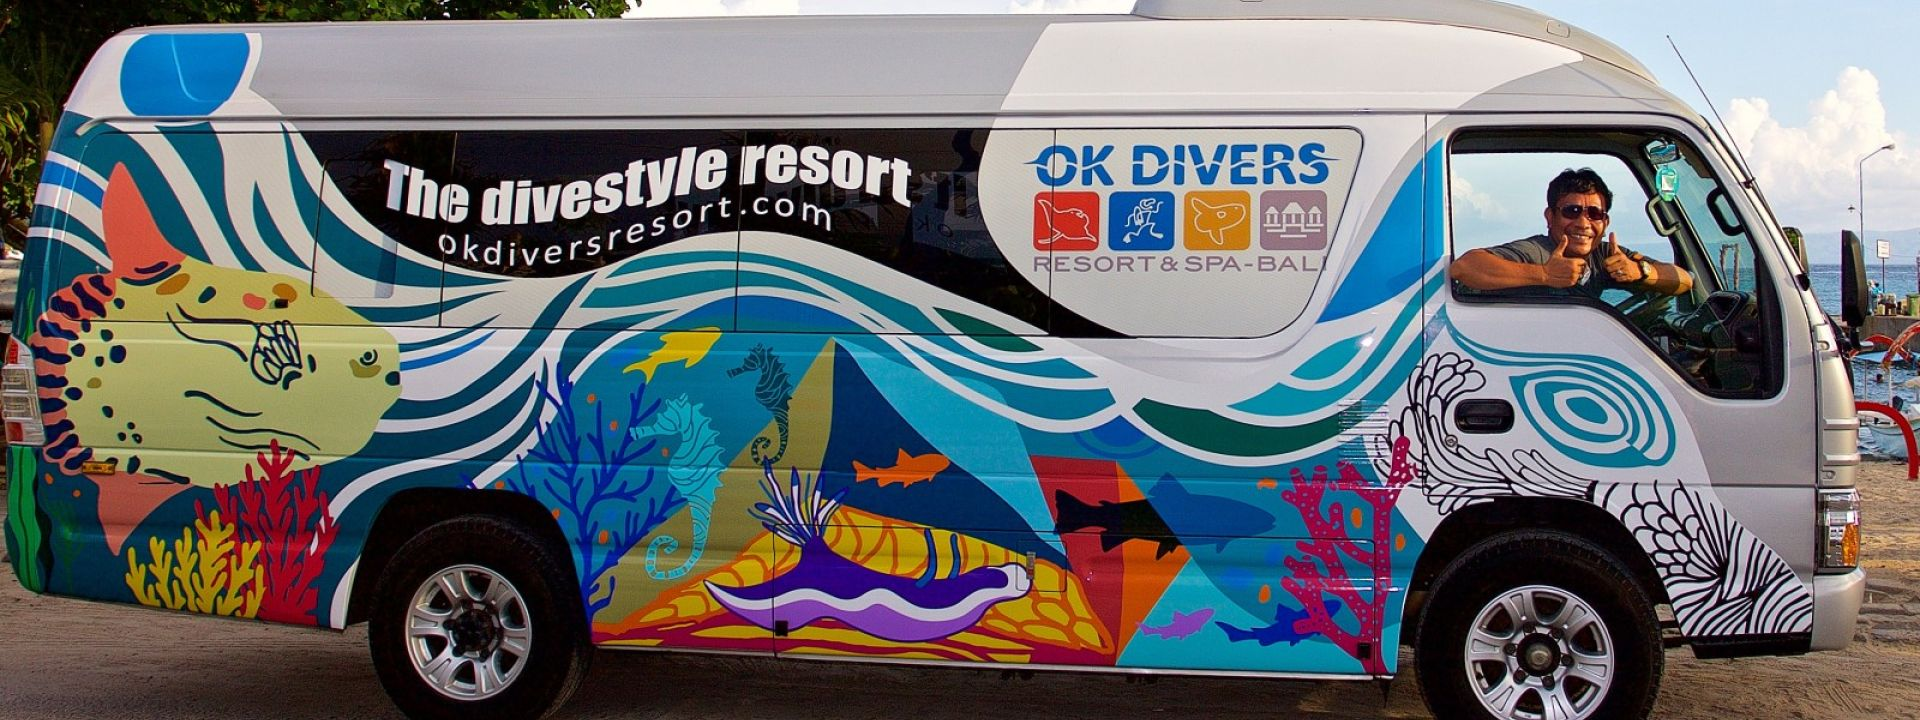 OK Divers Bali Diving Bus Transport